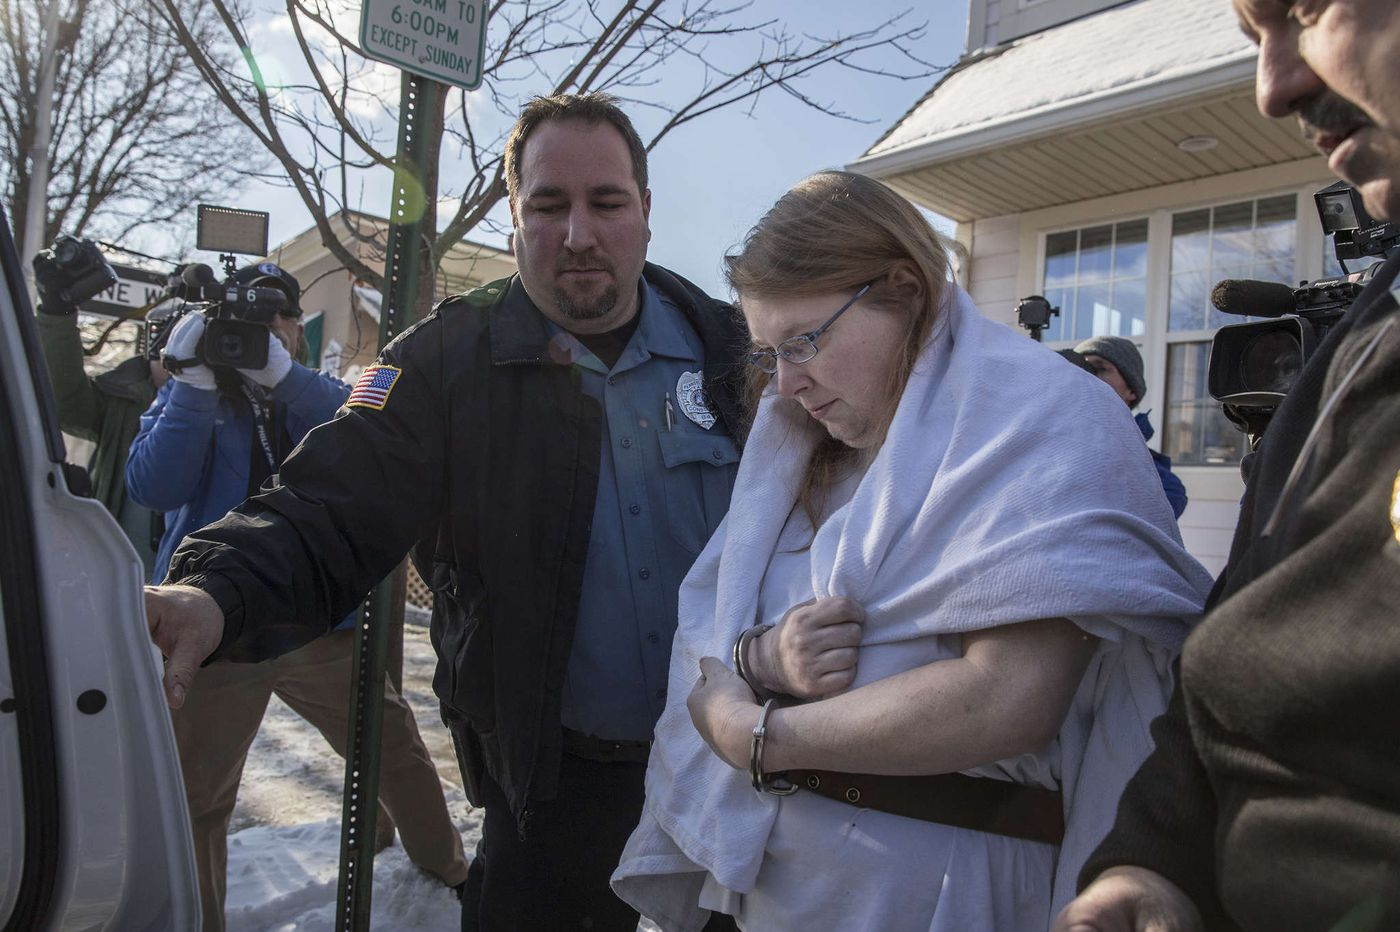 'There is no cure for people like you.' Mom gets life in prison for murder, dismemberment of Grace Packer